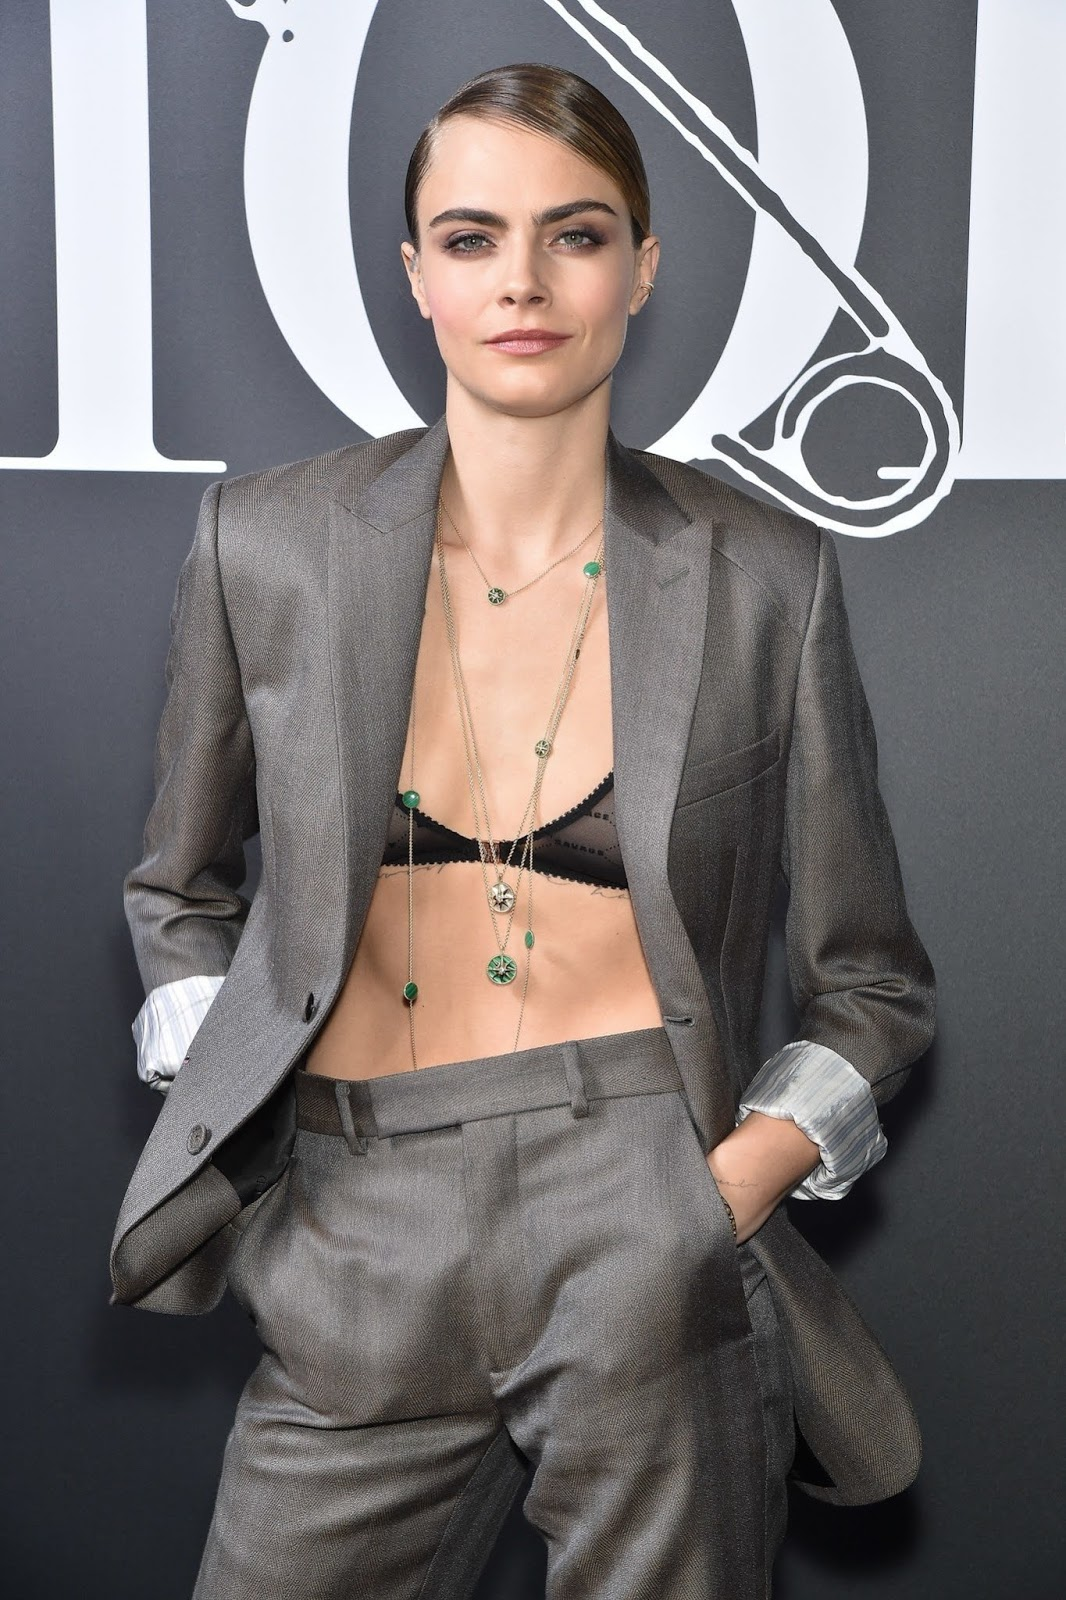 Cara Delevingne arrives at the Dior Homme Fashion Show in Paris in sheer Fenty bra